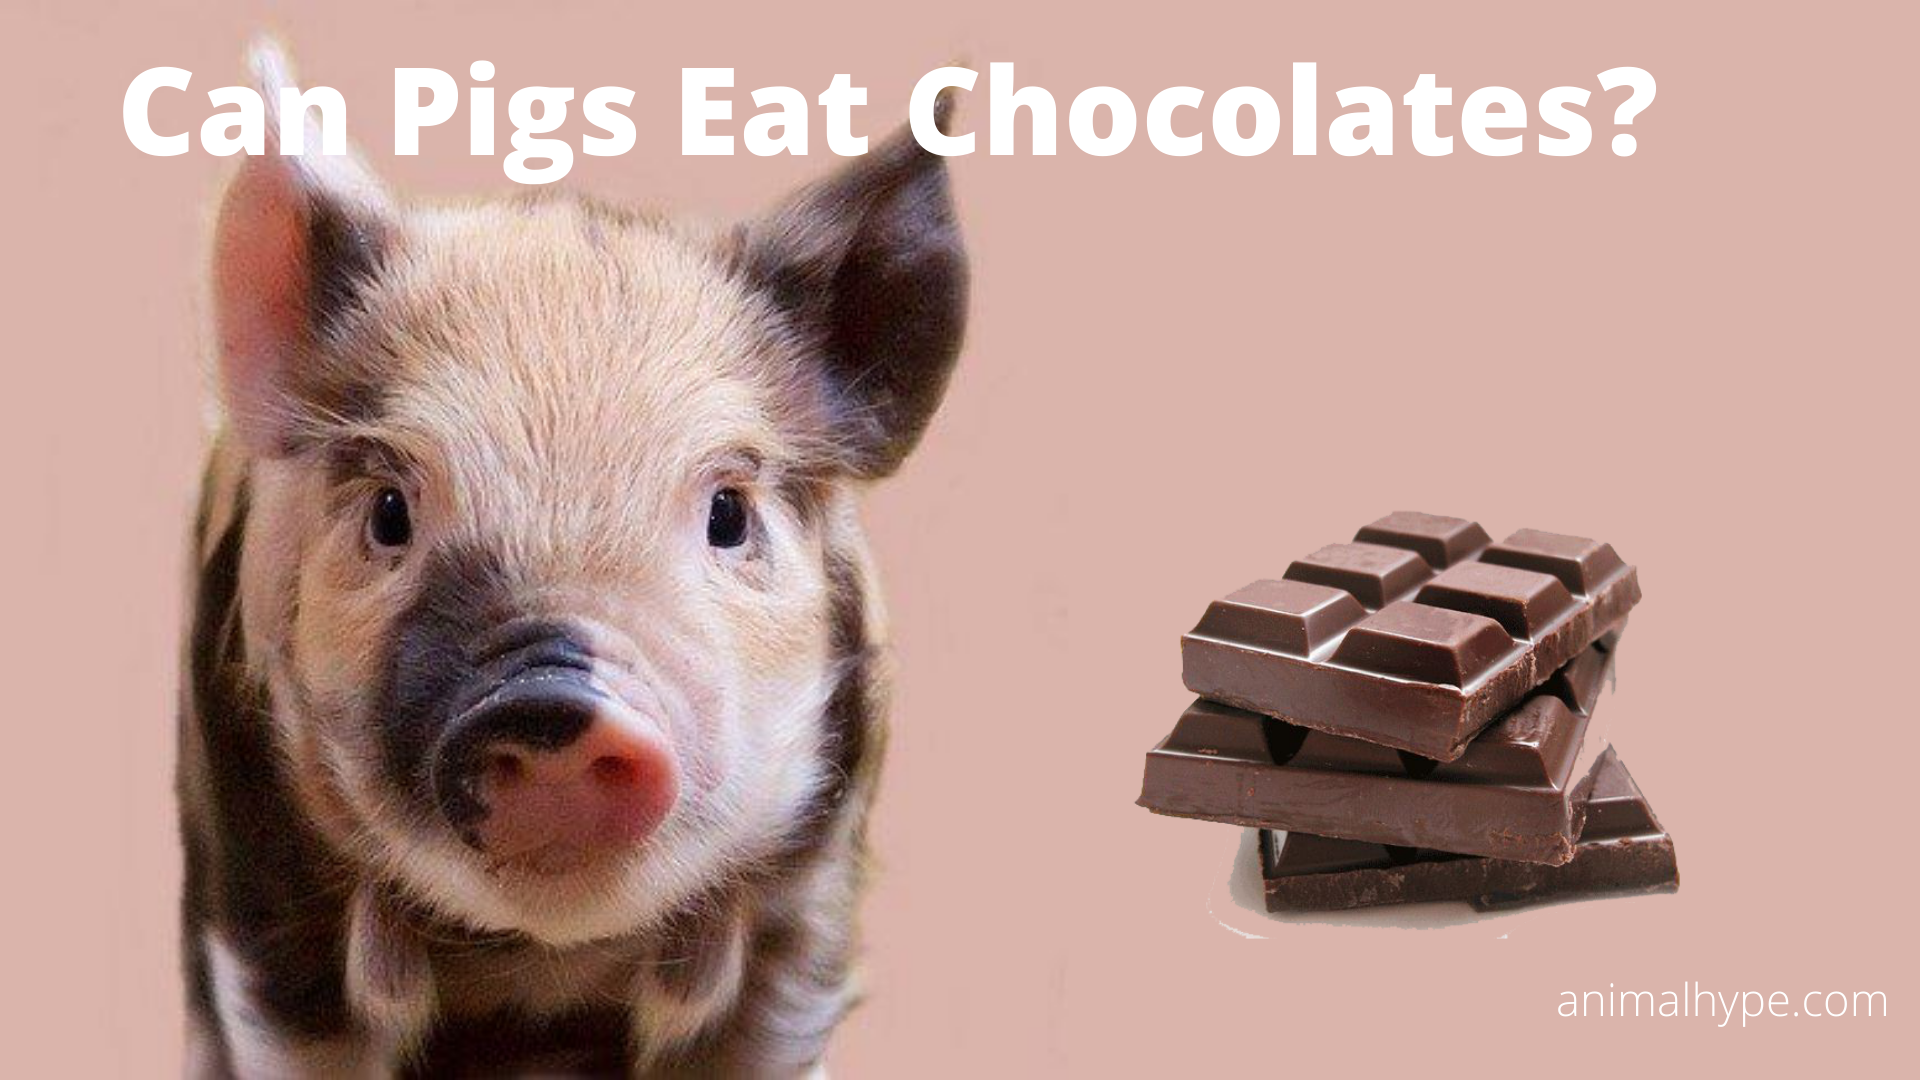 Can Pigs Eat Chocolates